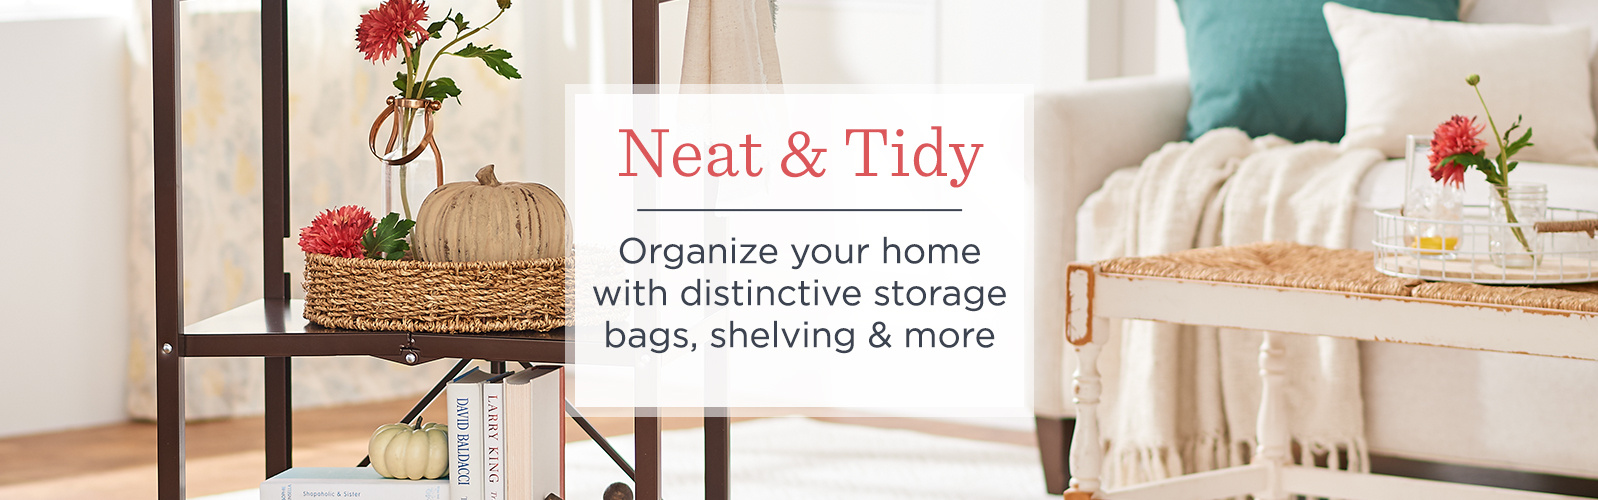 Neat & Tidy. Organize your home with distinctive storage bags, shelving & more